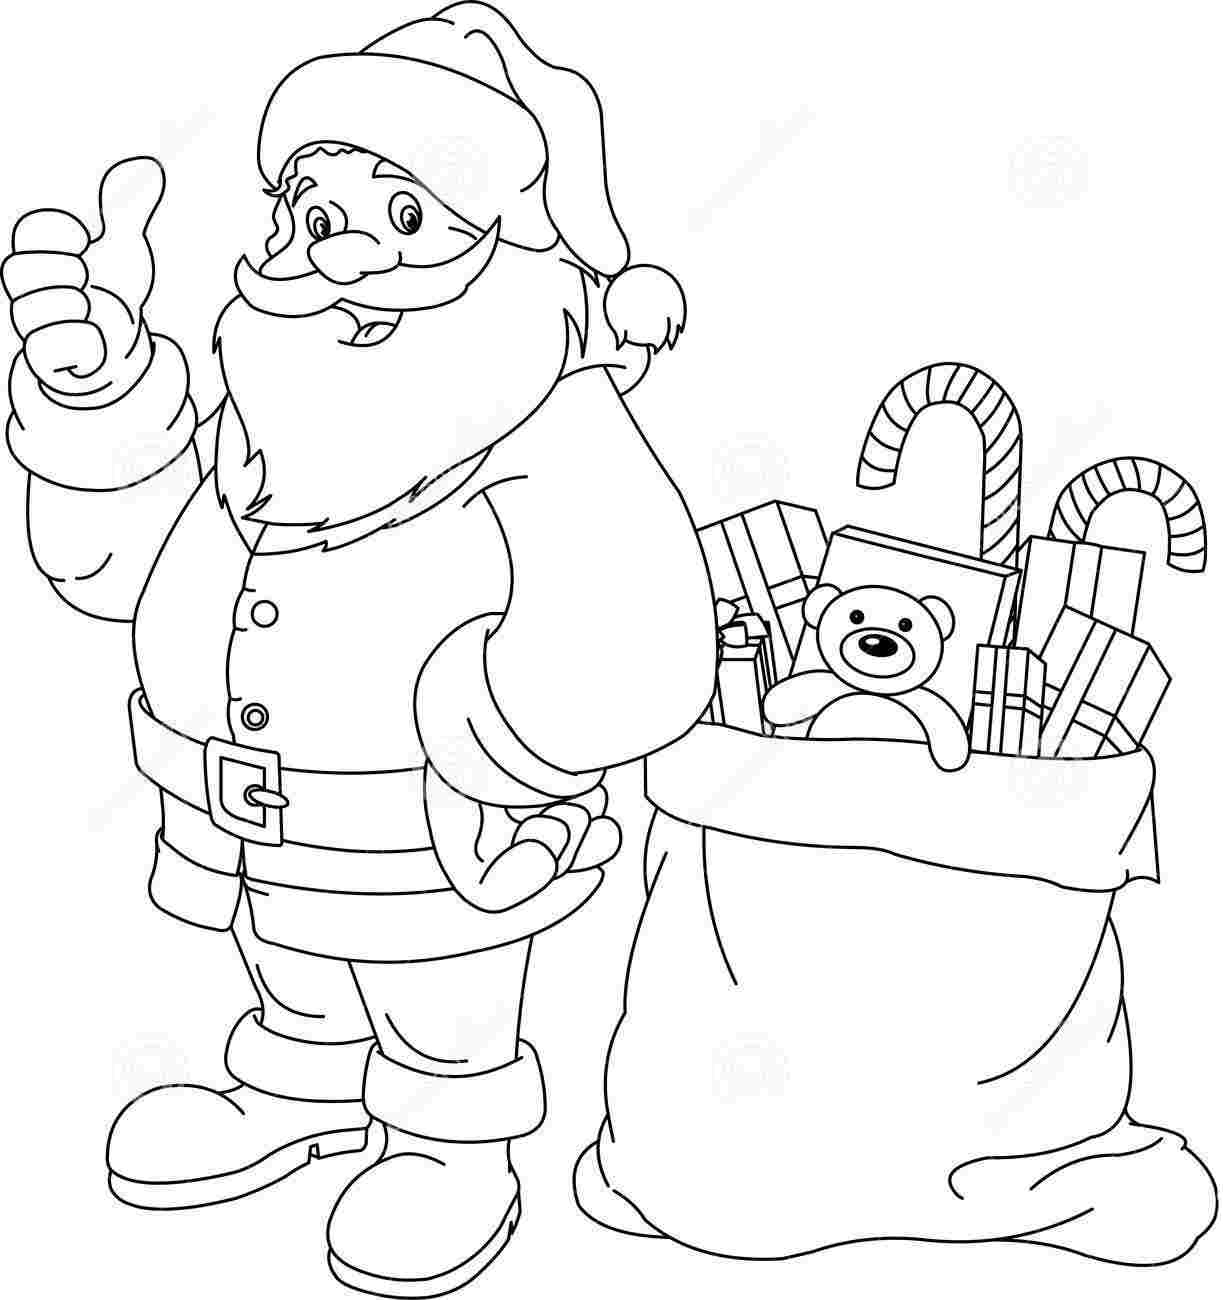 Santa_Claus_Coloring_Pages_01